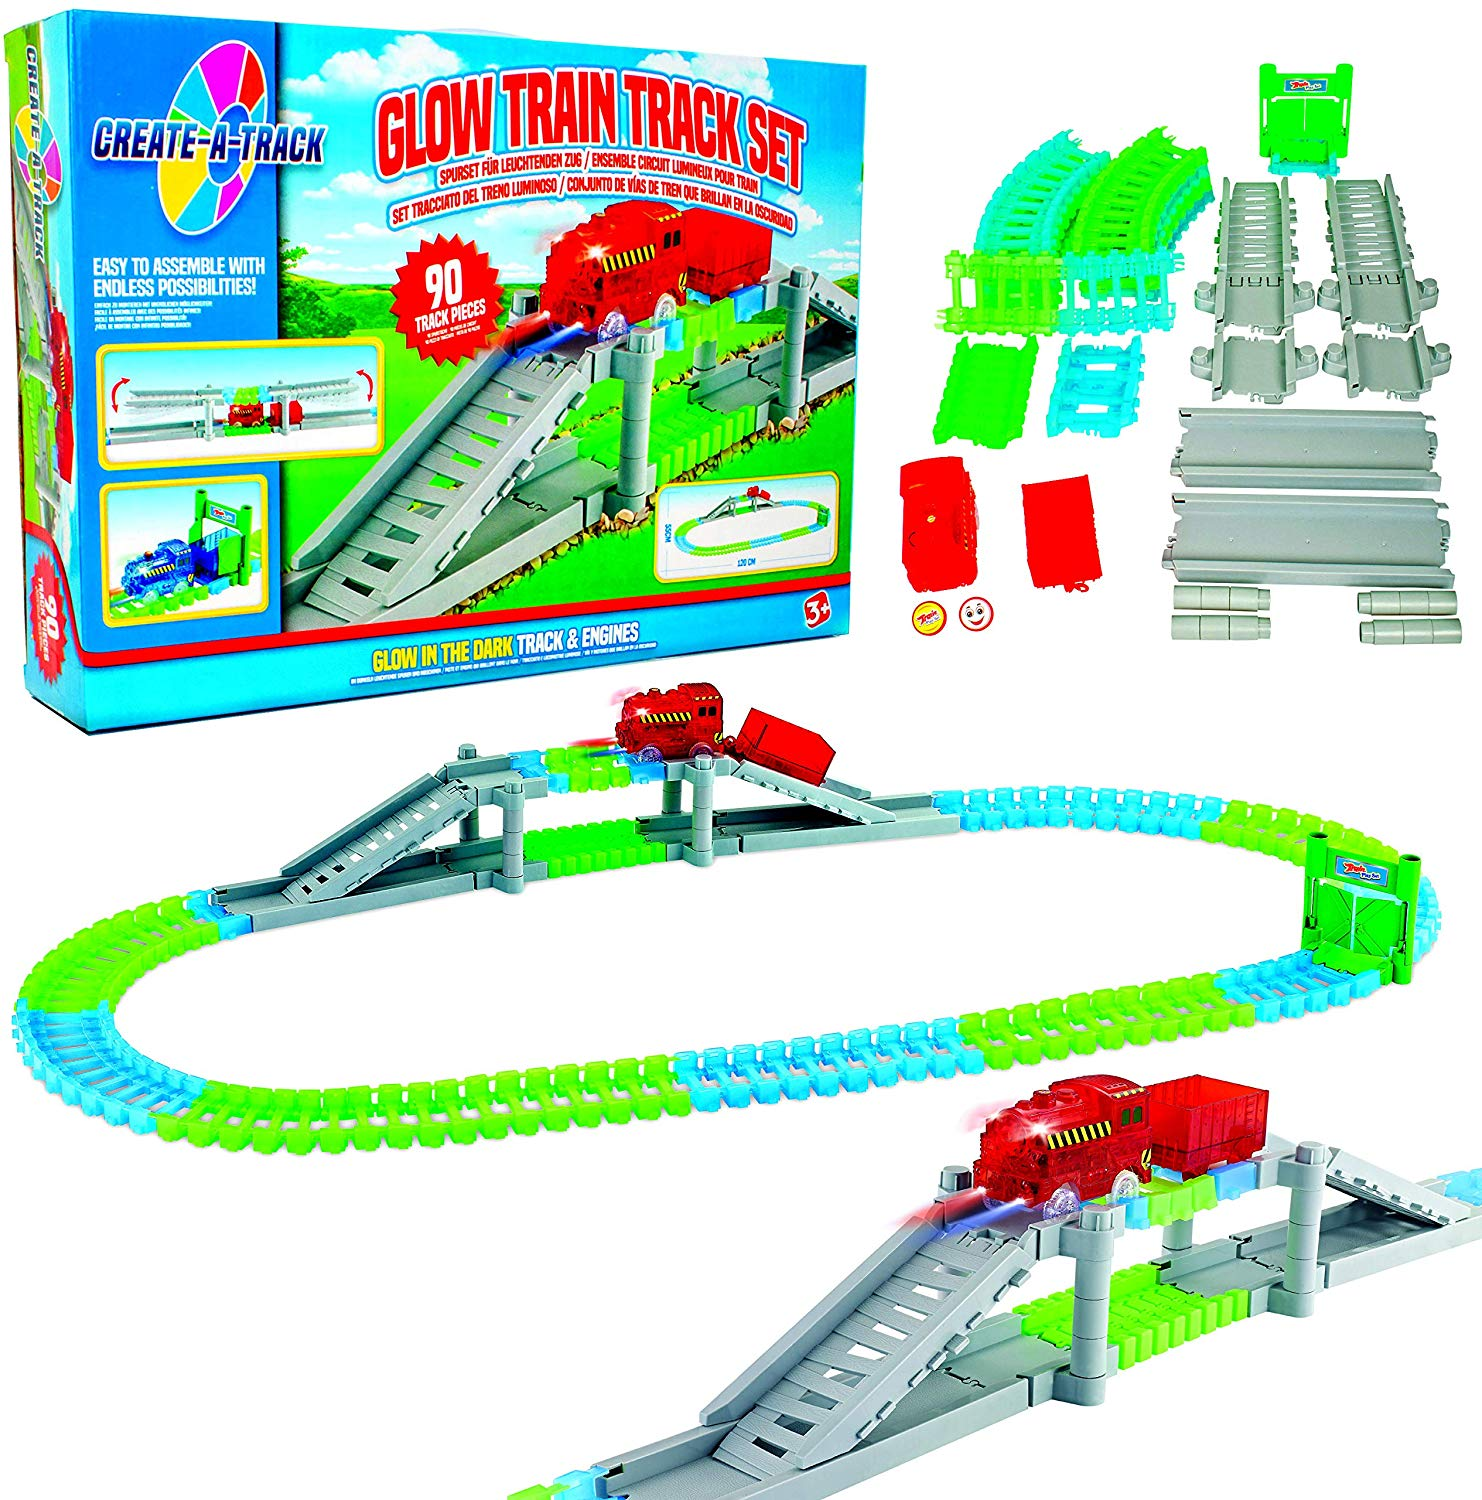 Create-A-Track Flexible Train Track & Light Up Train Set Only £3.99 on Amazon